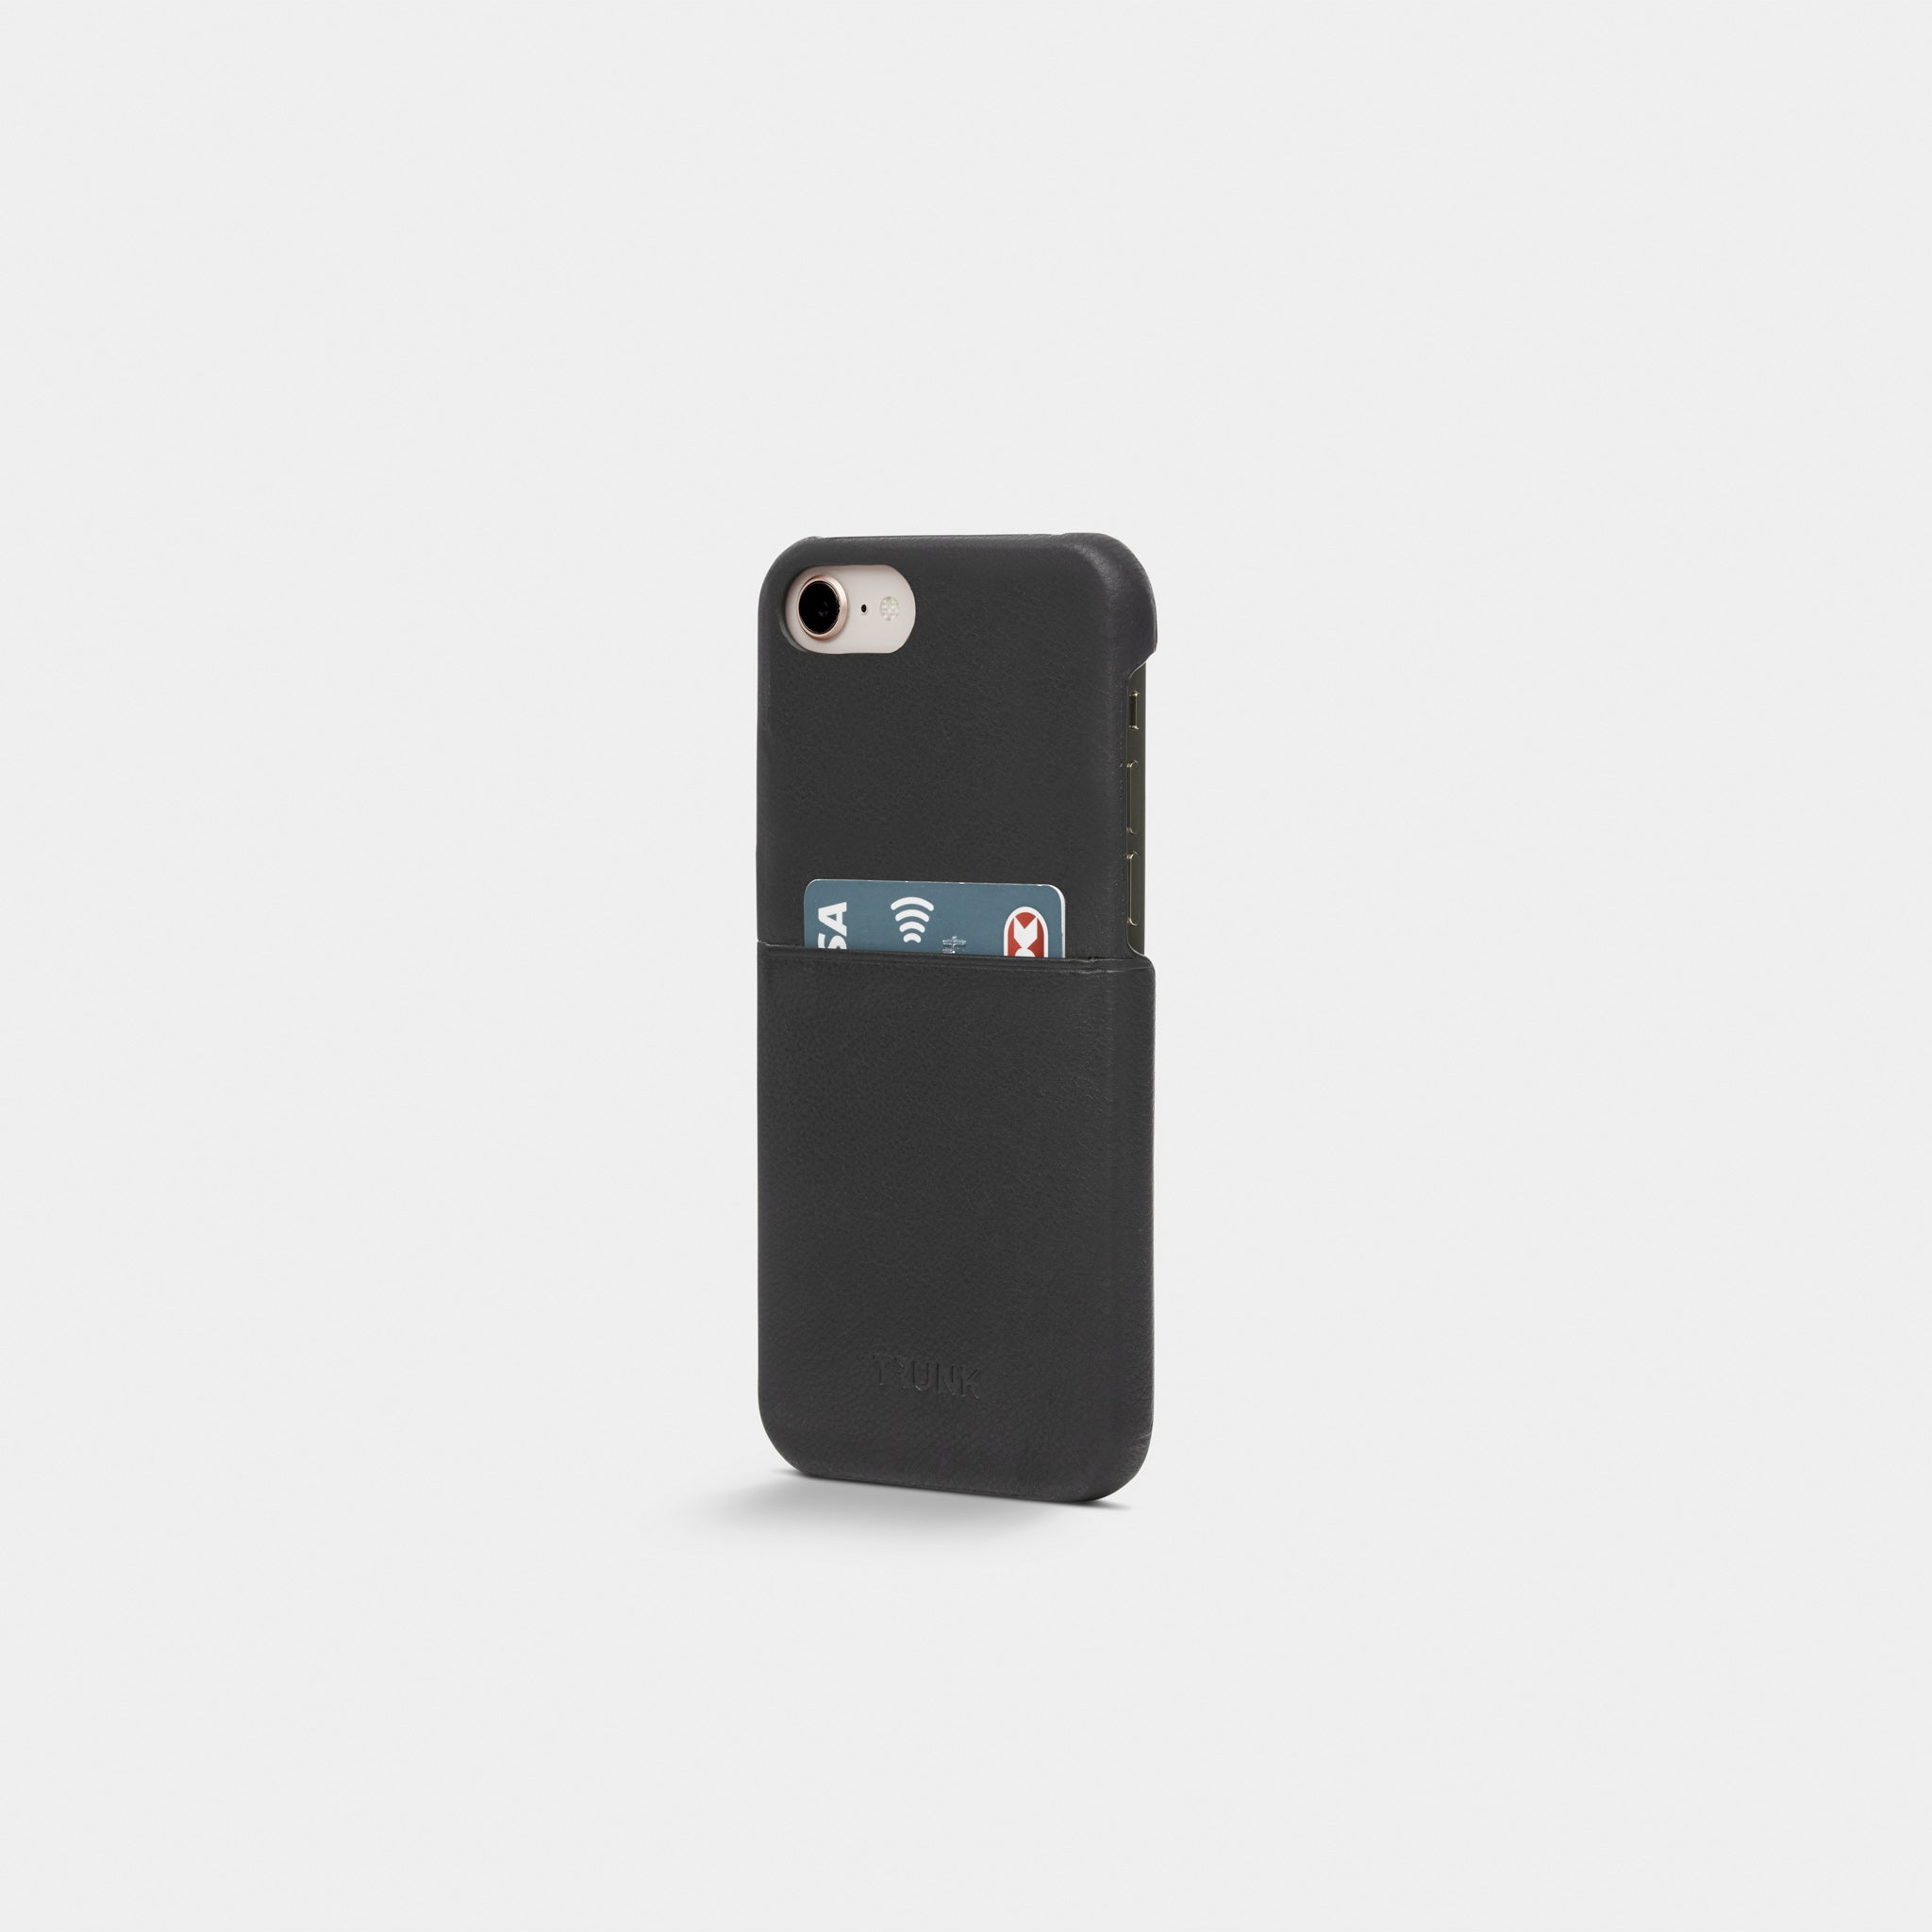 Black Leather iPhone Cover - iPhone 6, 7, 8 - Neoprene